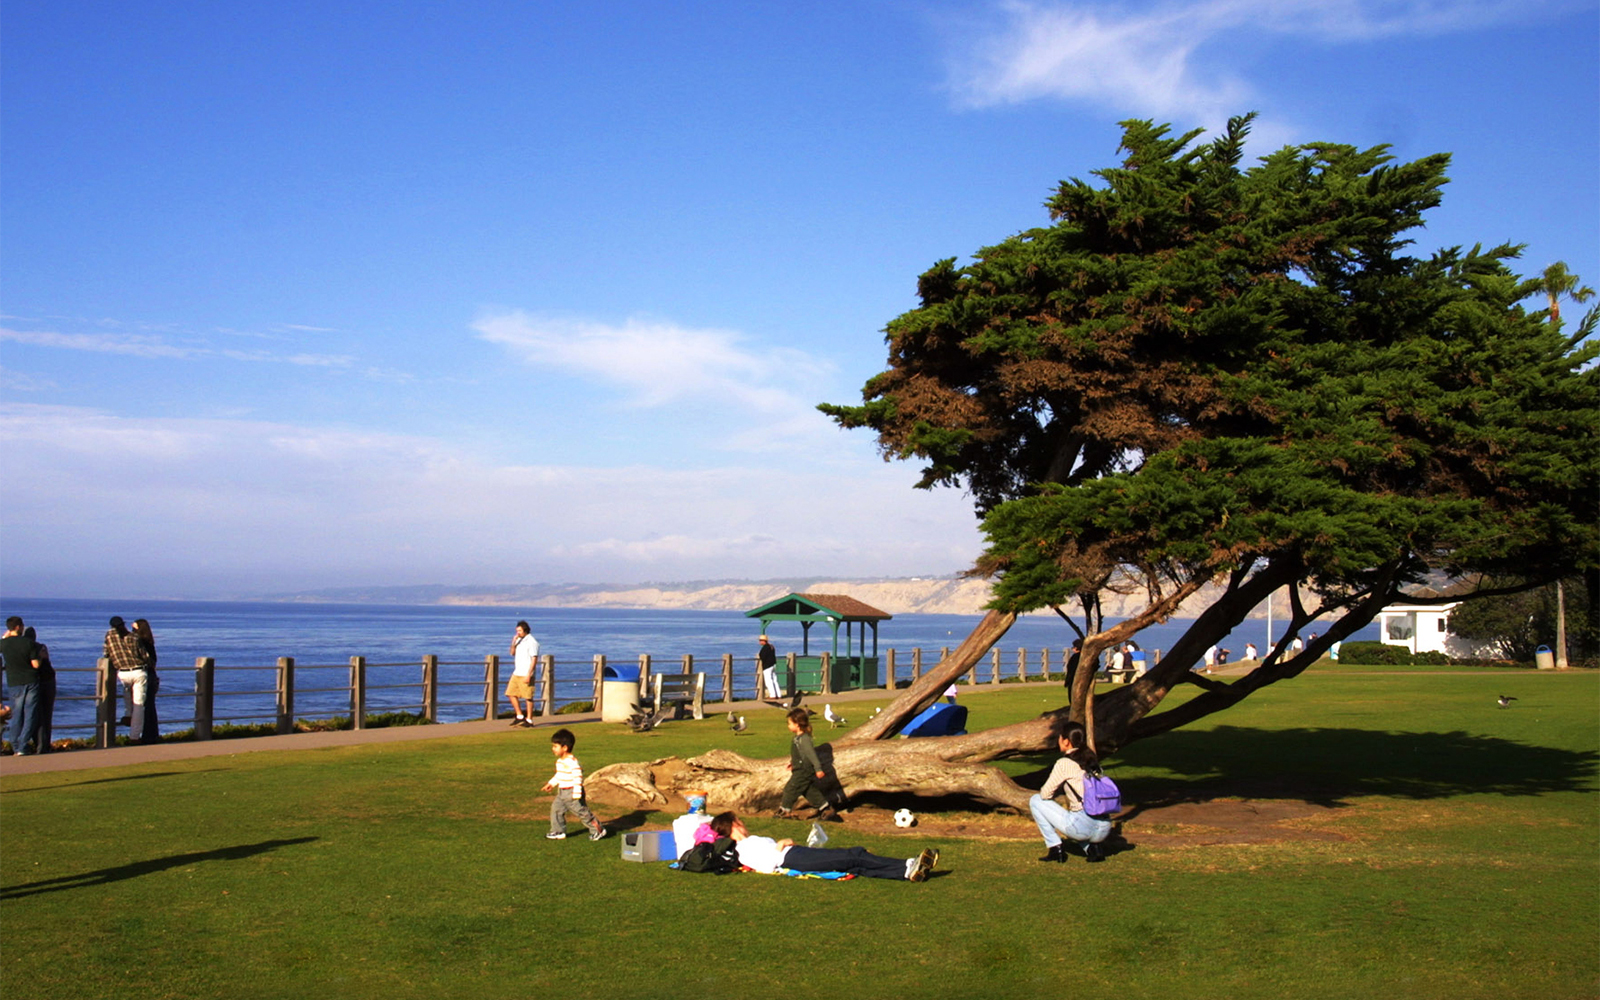 America's Best Cities for Picnics: No. 2 San Diego